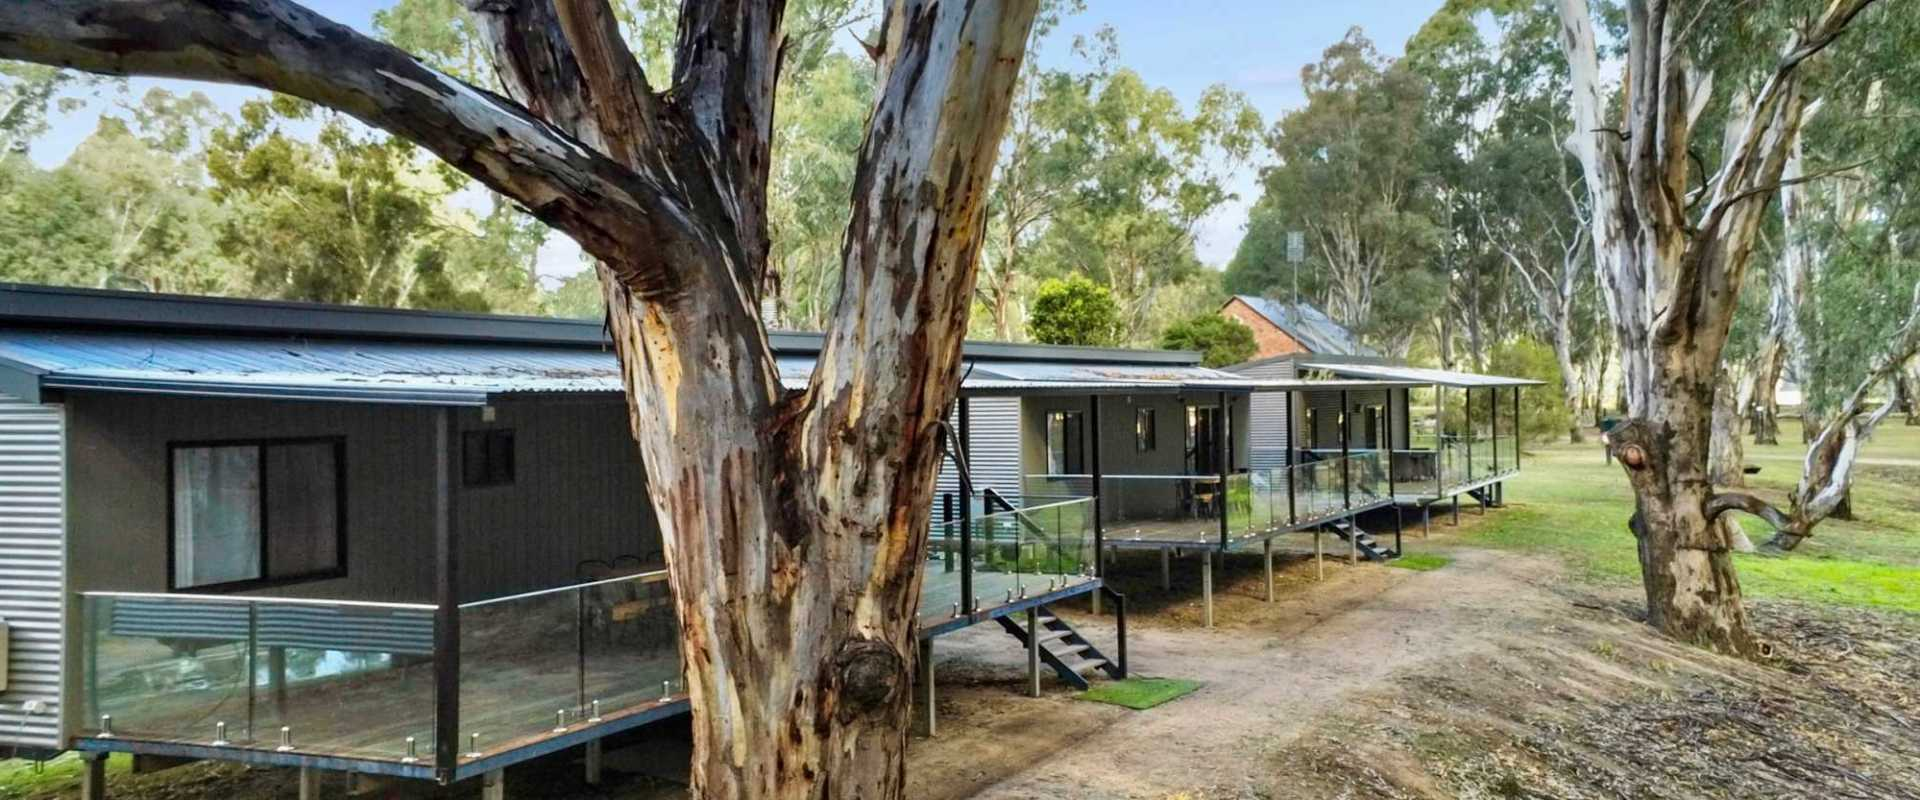 Kui Parks, Bushlands on the Murray,  Tocumwal NSW